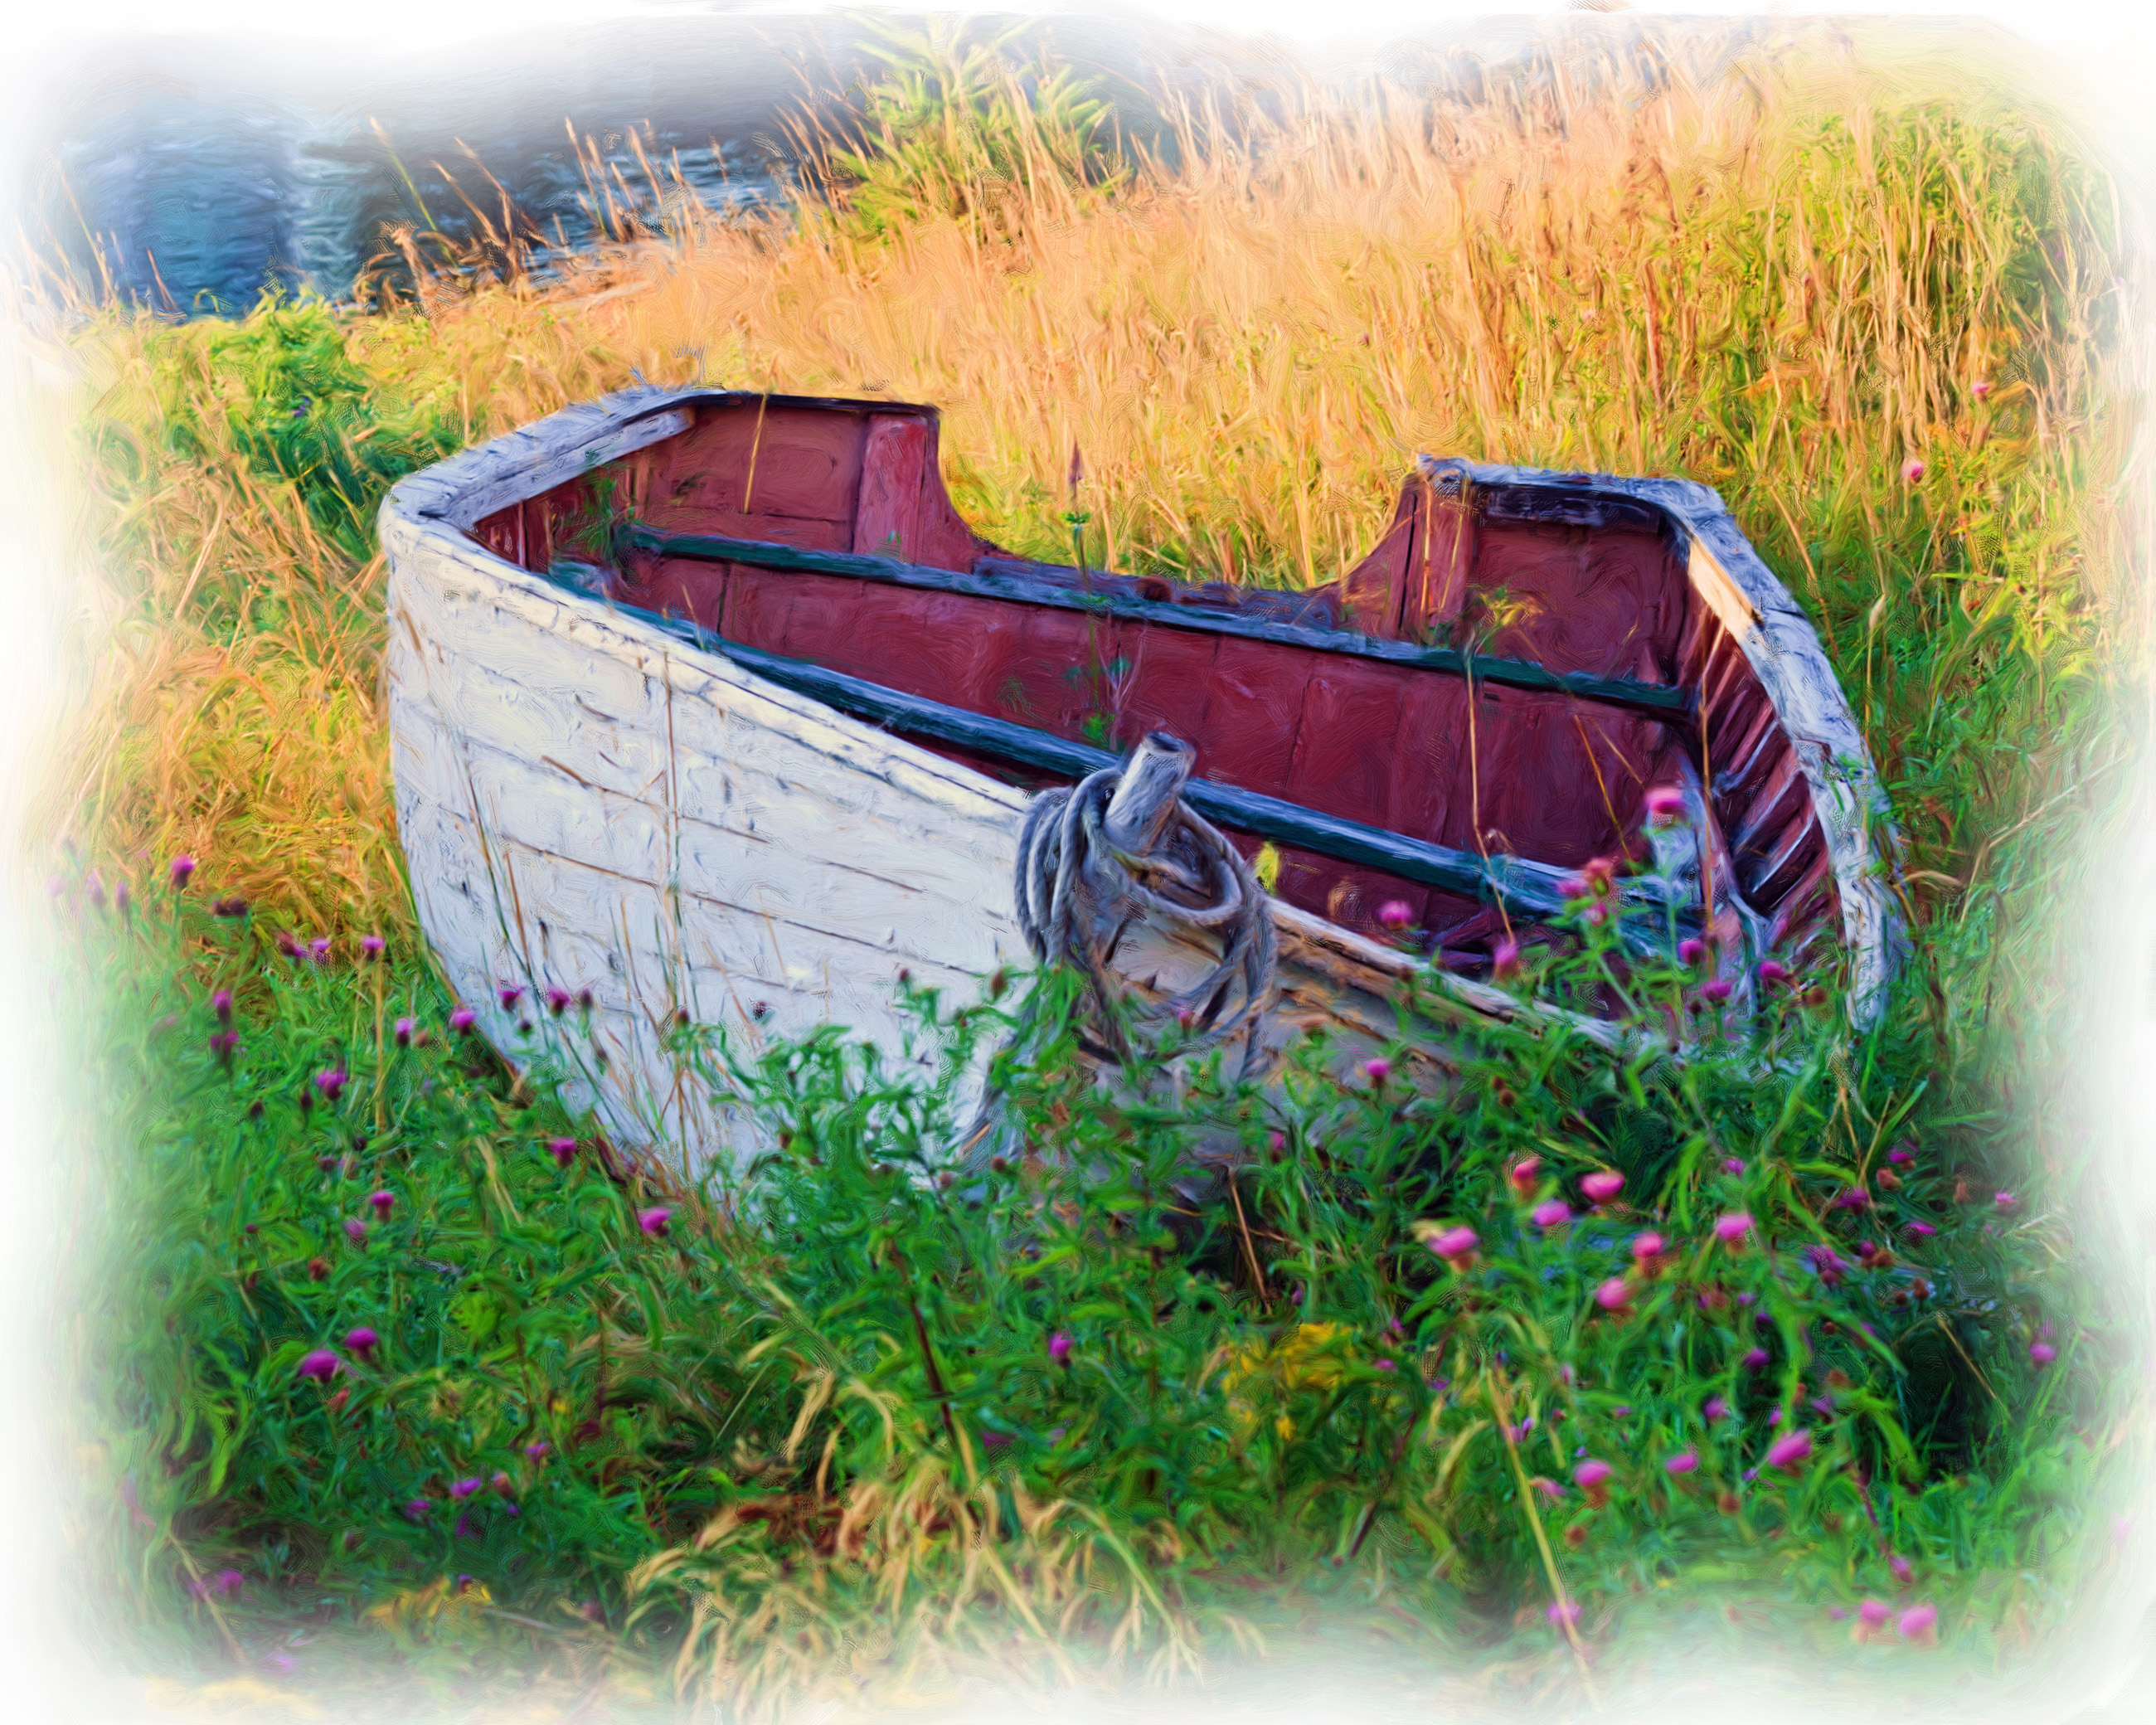 Oil Painting of an Old Boat, Artistic, Old, Strokes, Ships, HQ Photo